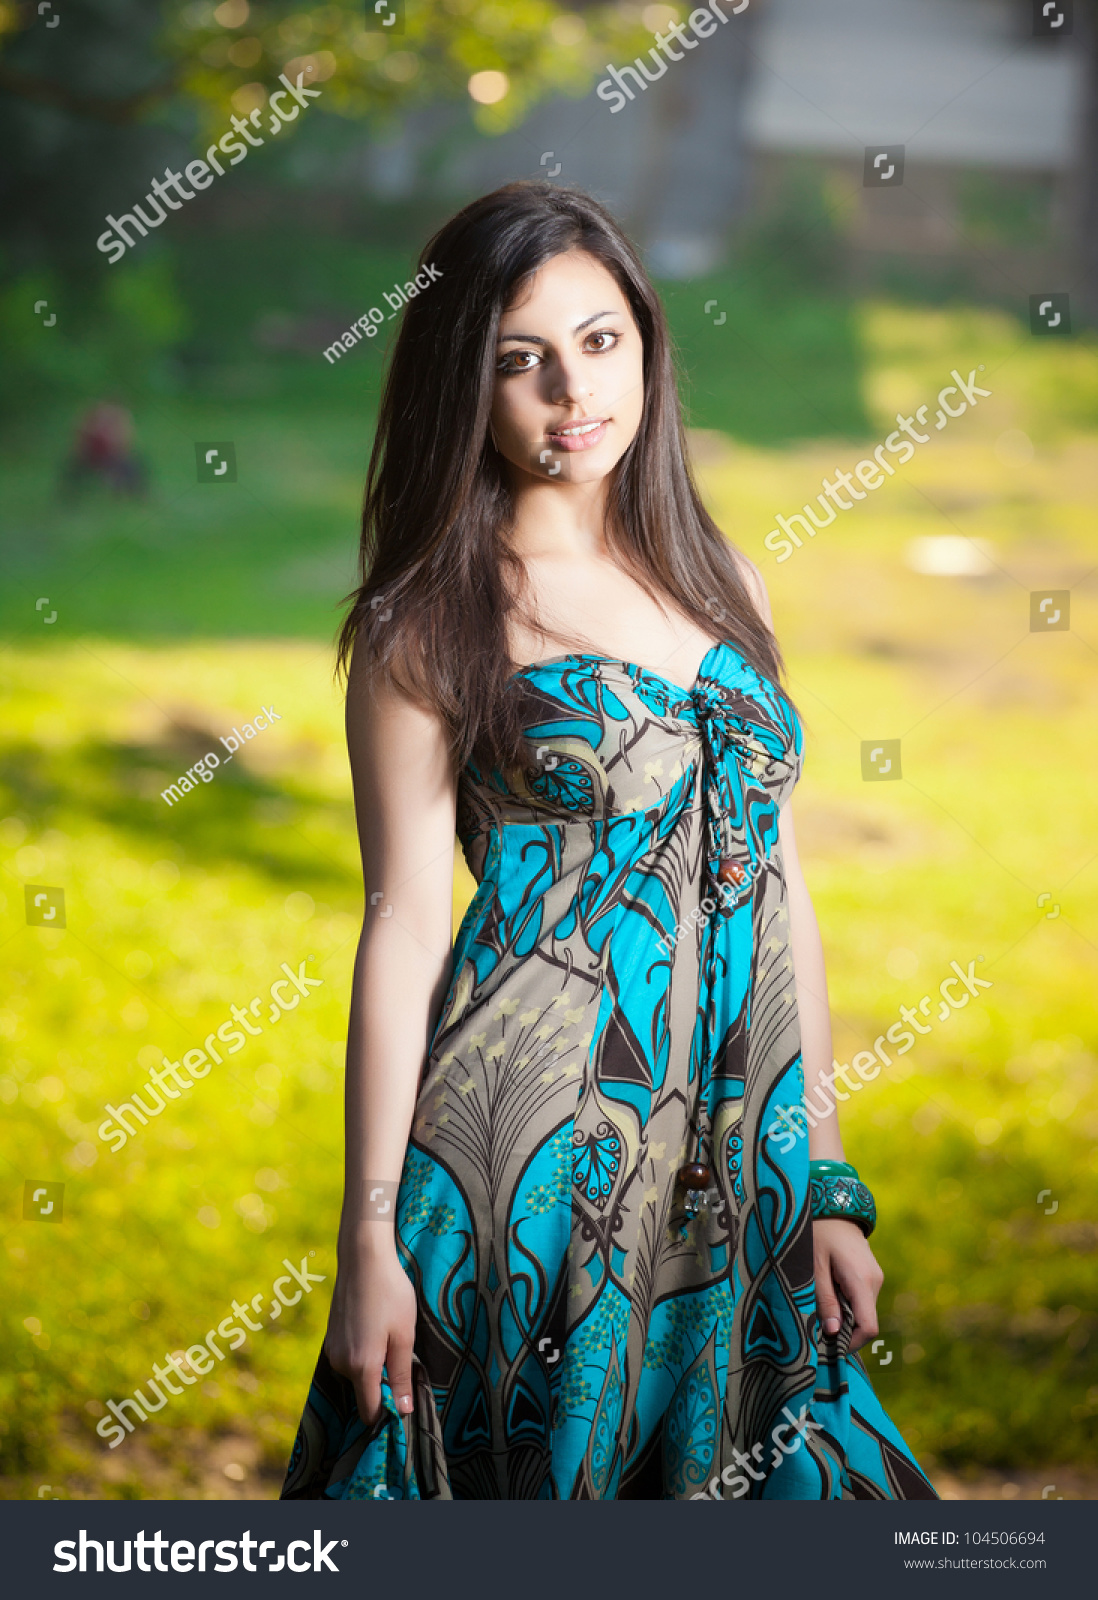 barlow hindu single women Single women in india do not see coupling as a route to just as single poor women, single indian men/ divorcee's who are unemployed should be given a free.